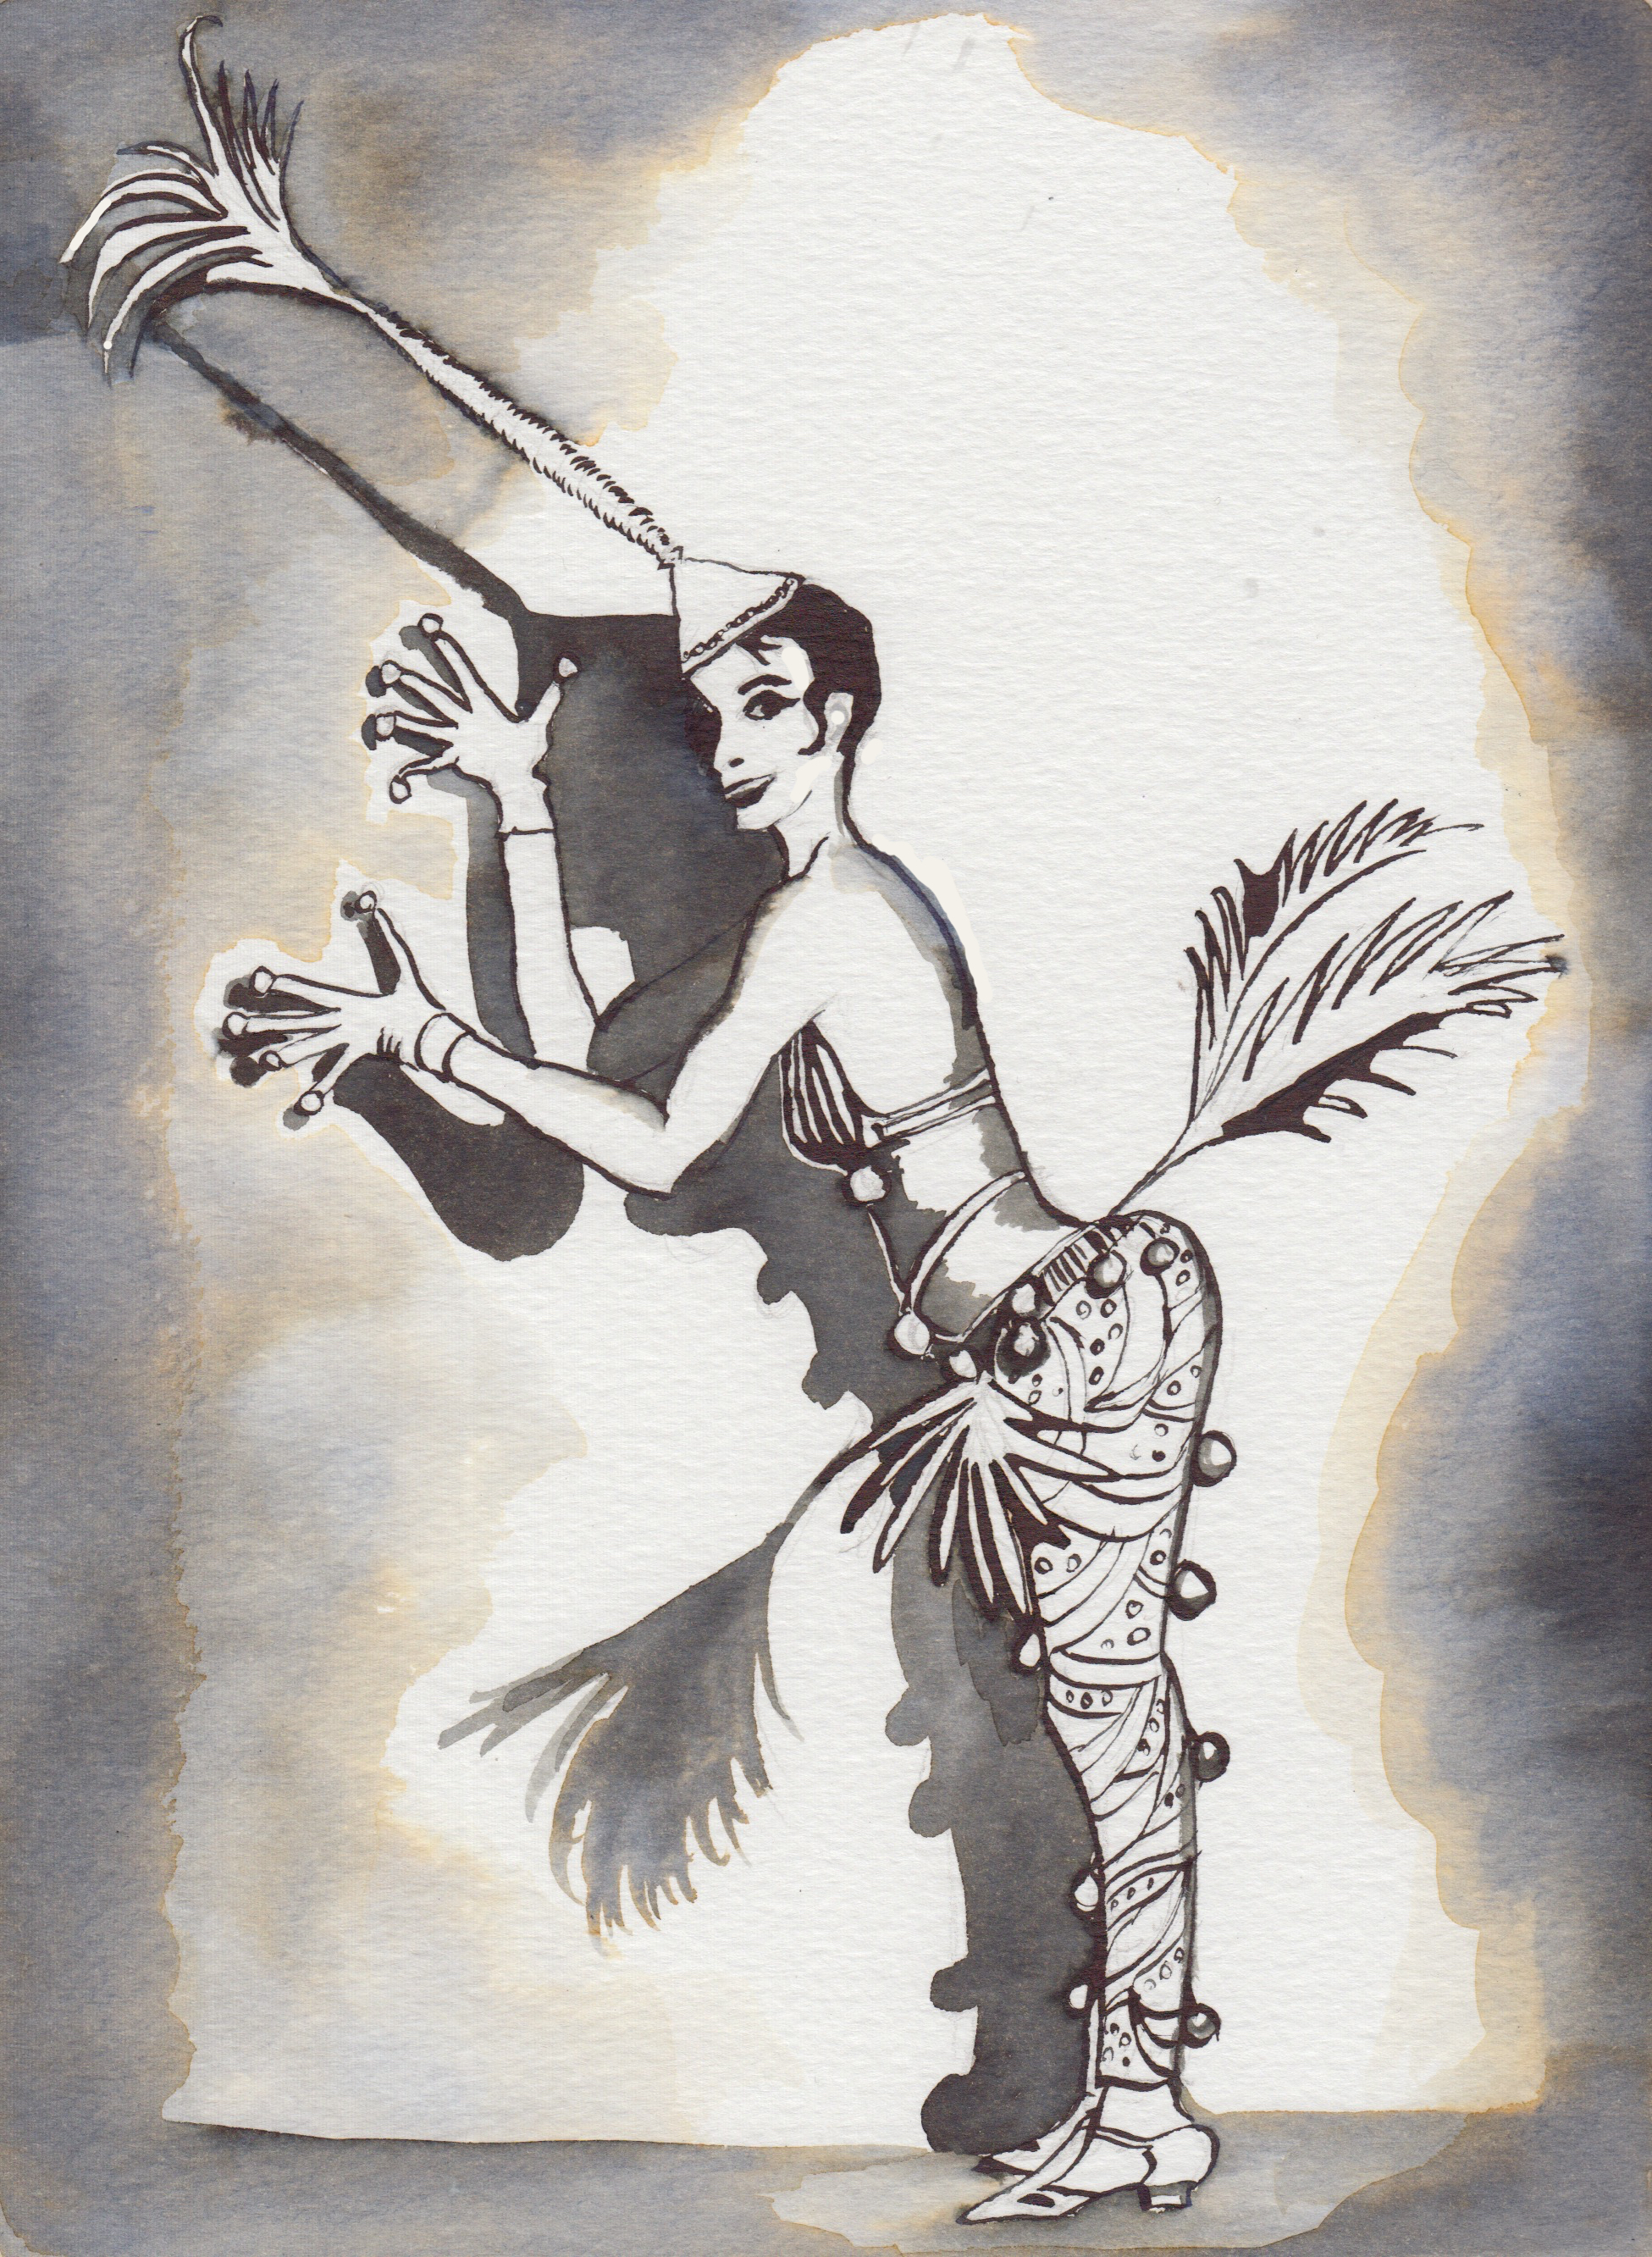 Spirit of the Jazz Age illustration by Clare O'Connell